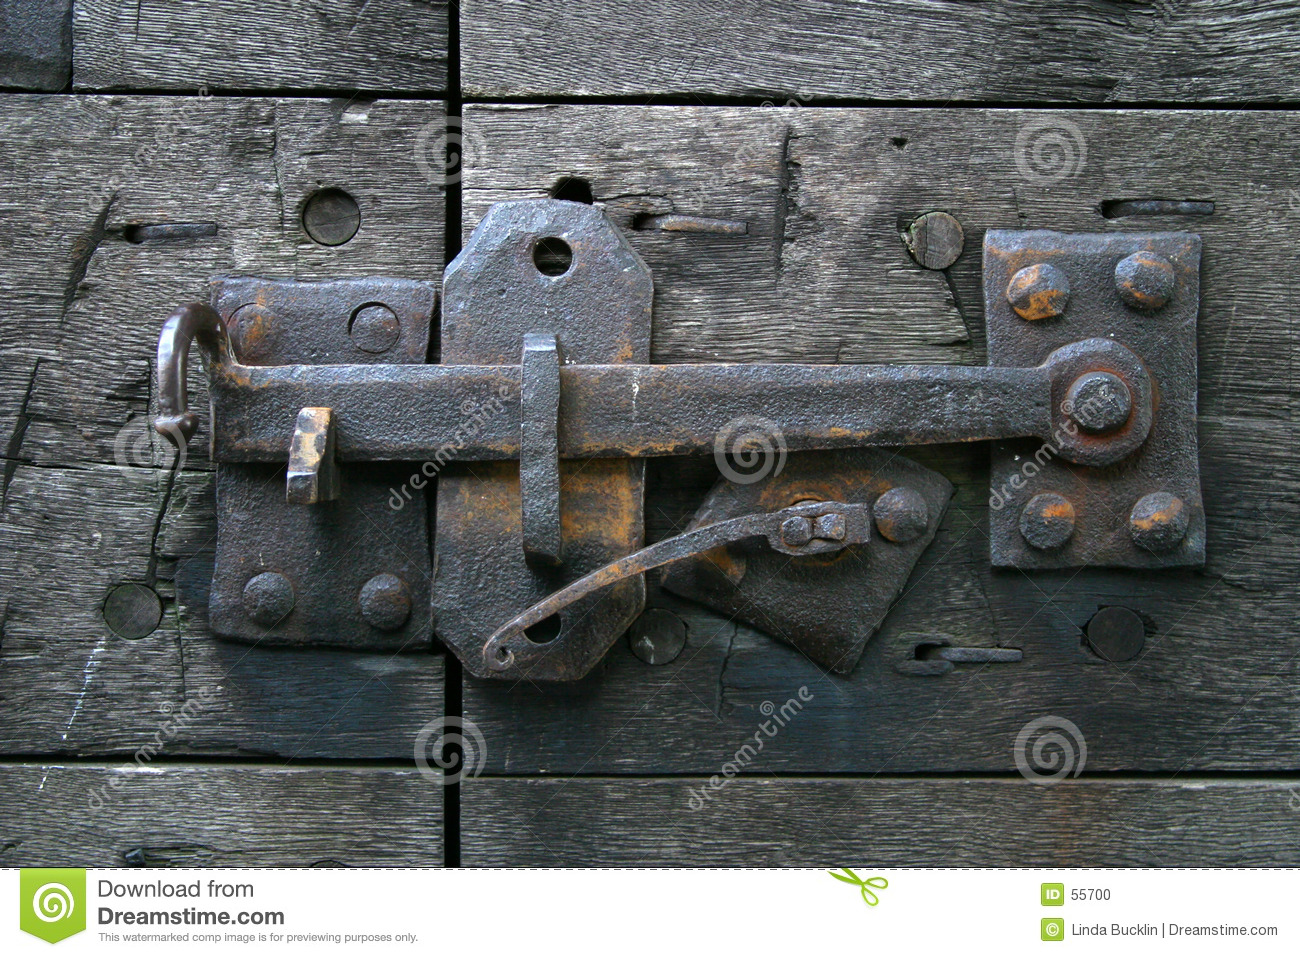 Antique Door Latch - Antique Door Latch Stock Photo. Image Of Hardware, Historic - 55700